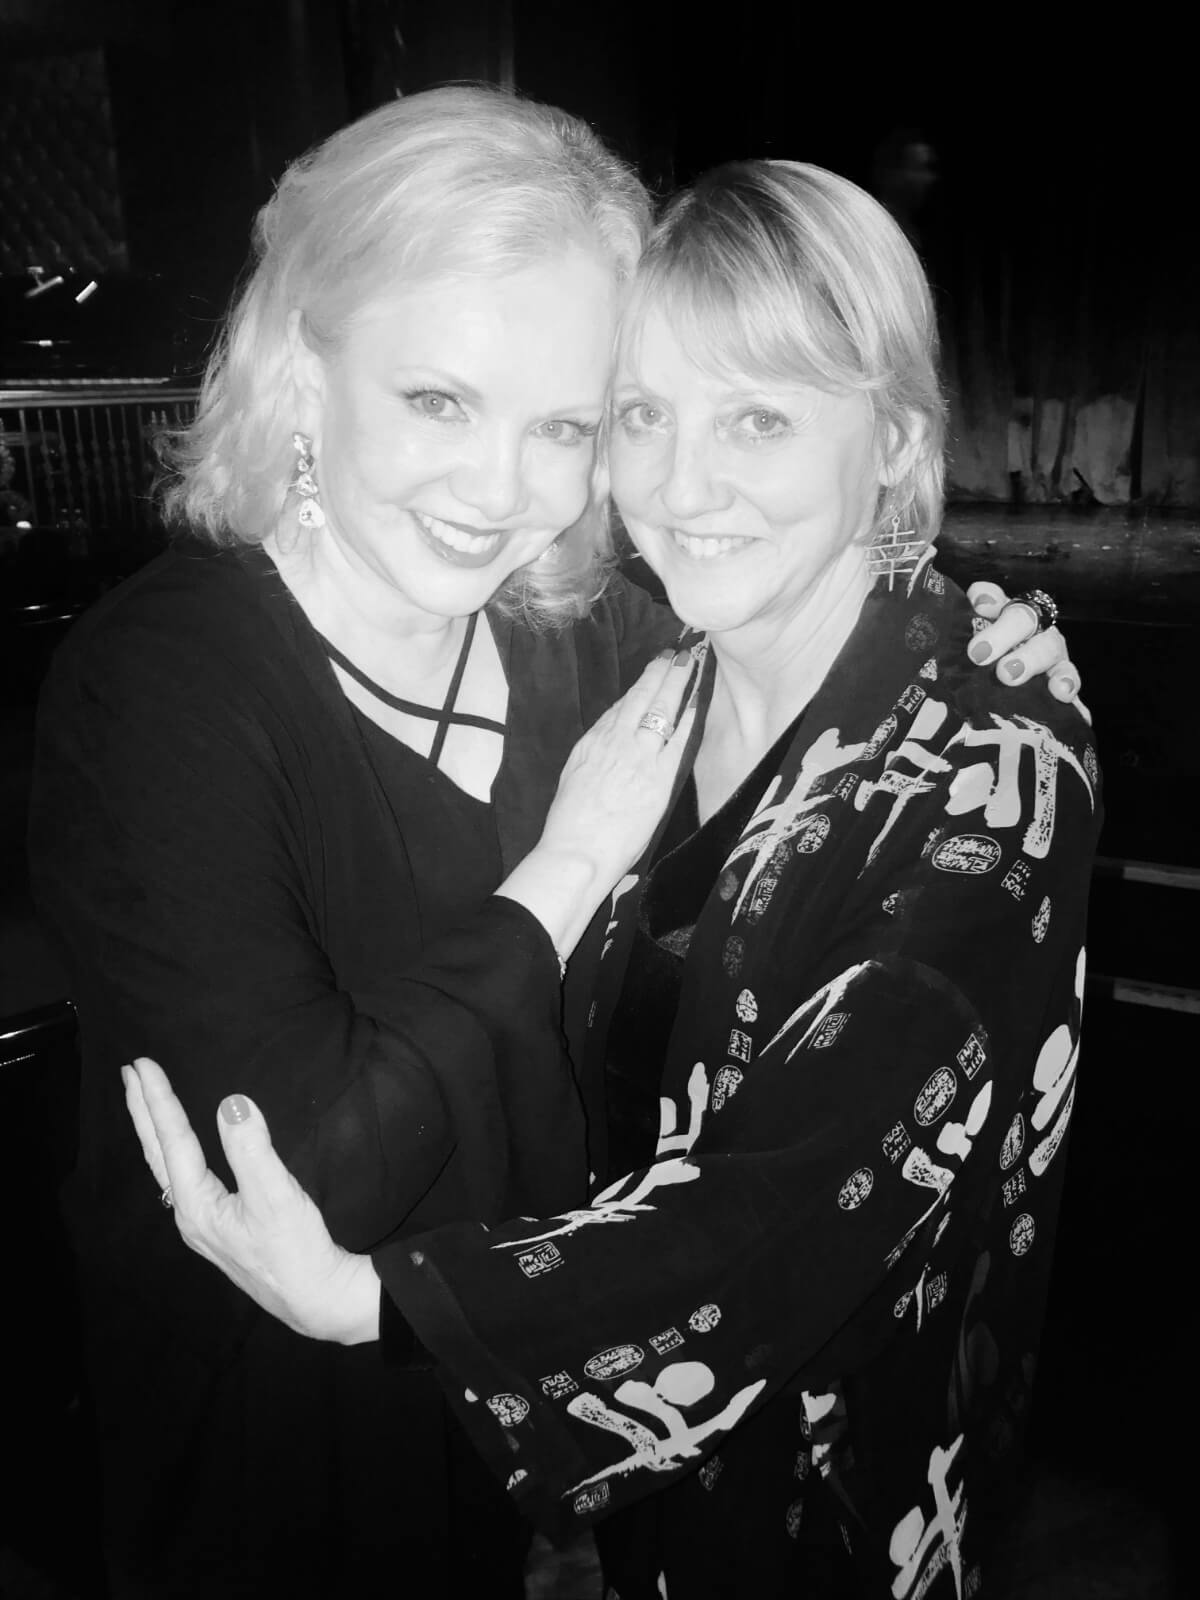 Black and white photo of Susan Stroman with Associate Choreographer of Little Dancer and Oklahoma! Ginger Thatcher. Both are dressed elegantly.